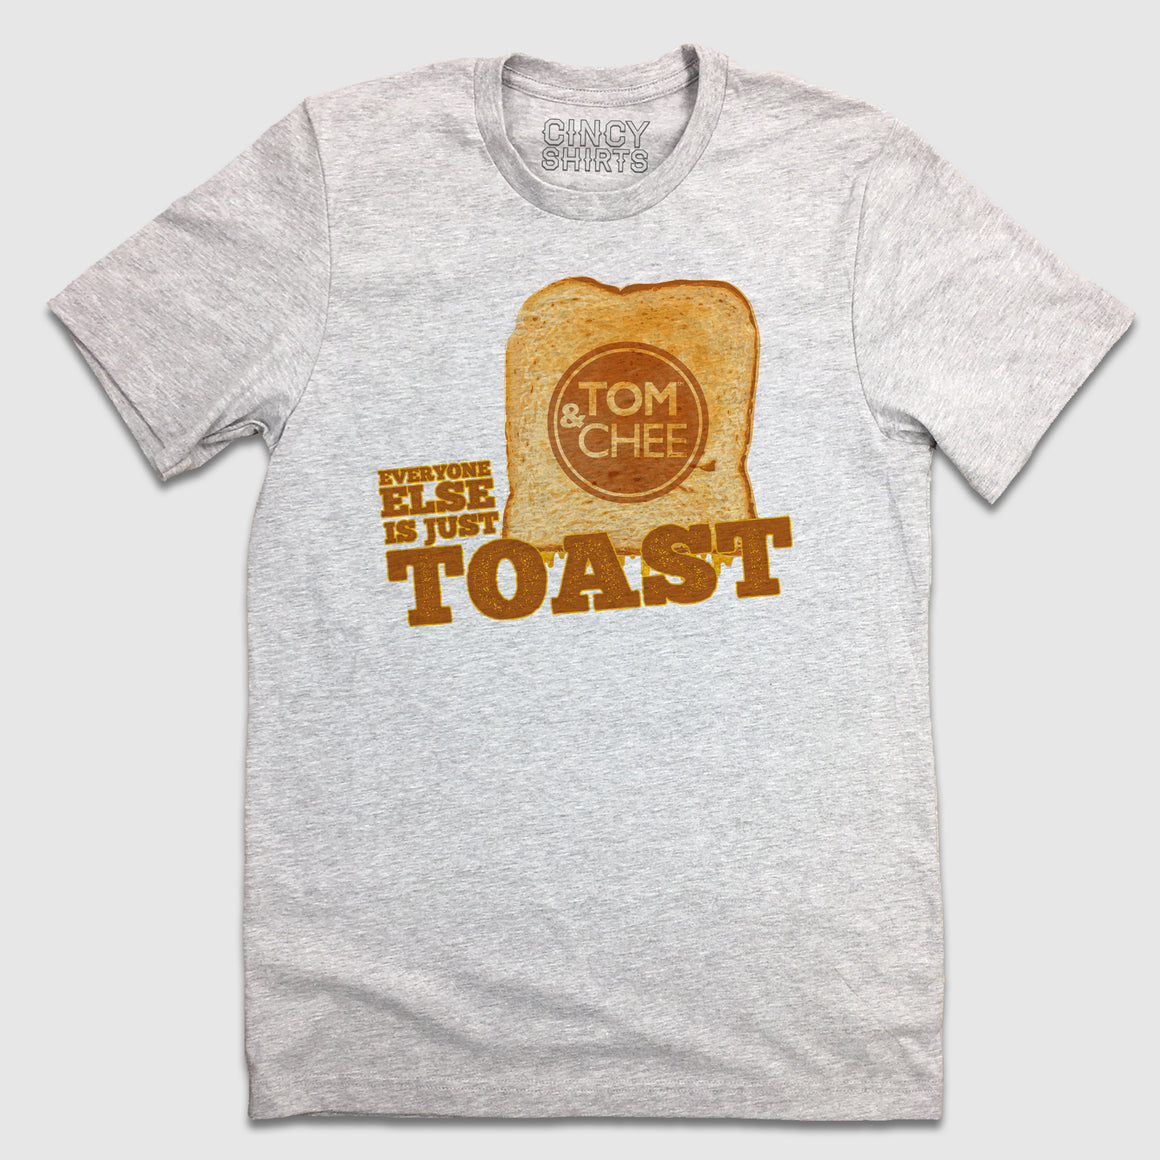 Tom & Chee Everyone Else Is Just Toast - Cincy Shirts